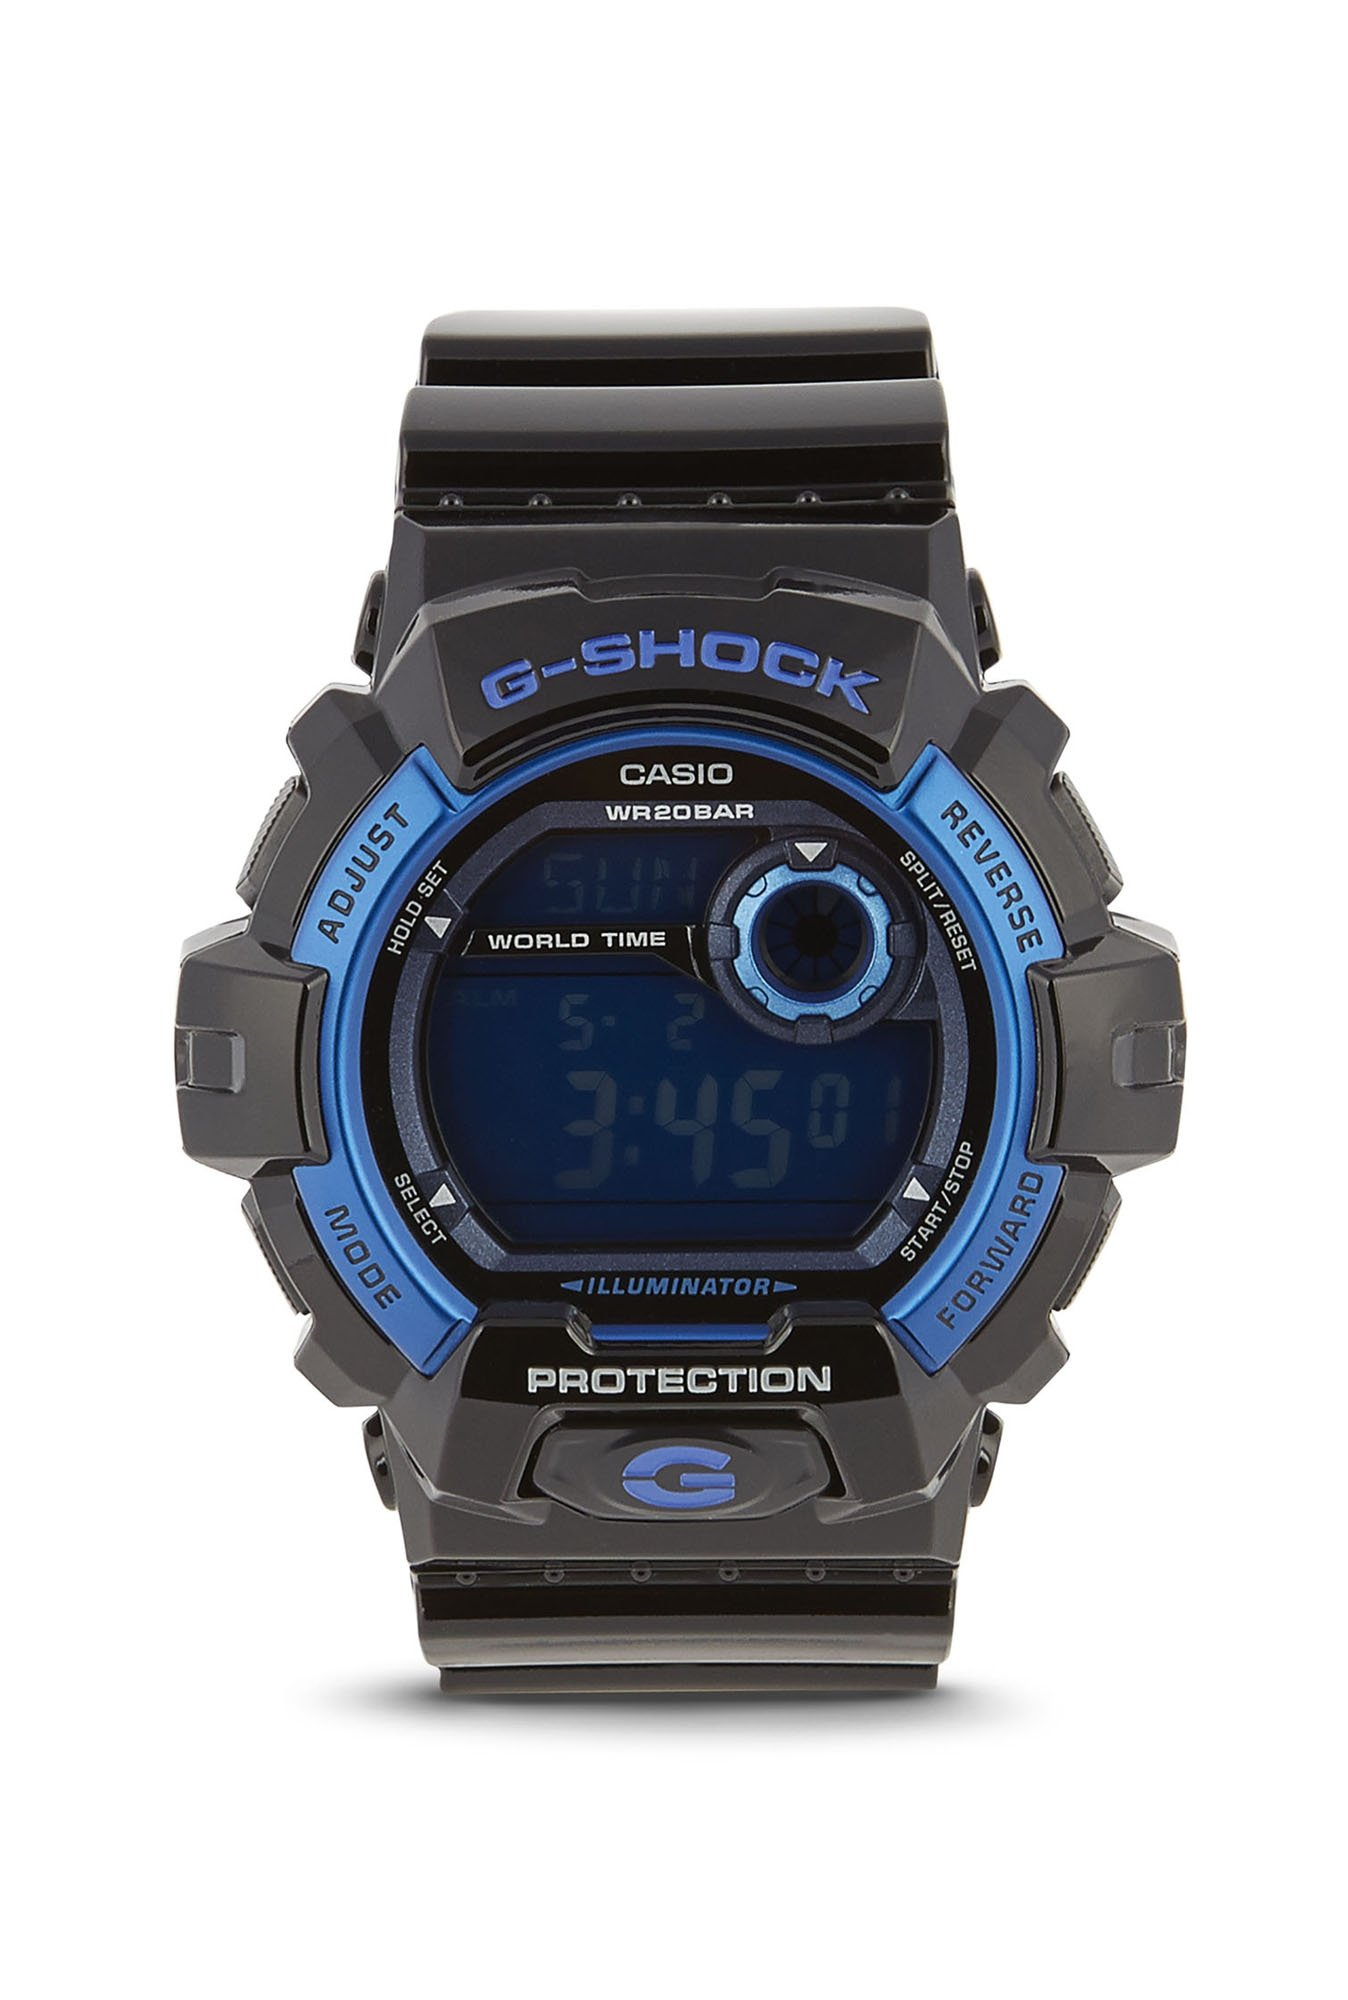 Casio G-Shock G-8900A-1DR (G354) Digital Men's Watch